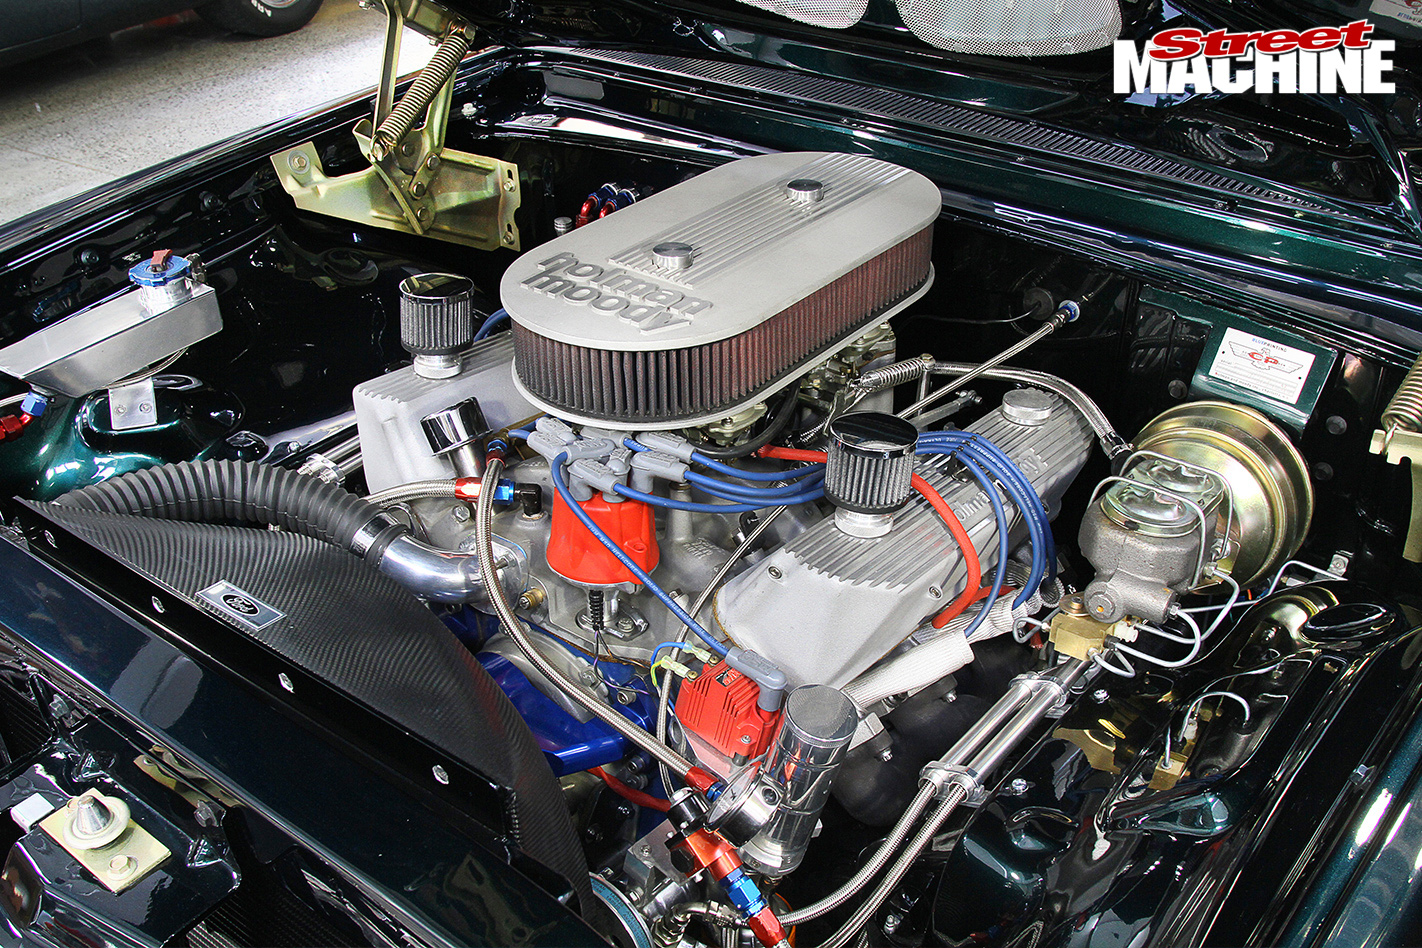 Ford -Galaxie -engine -bay